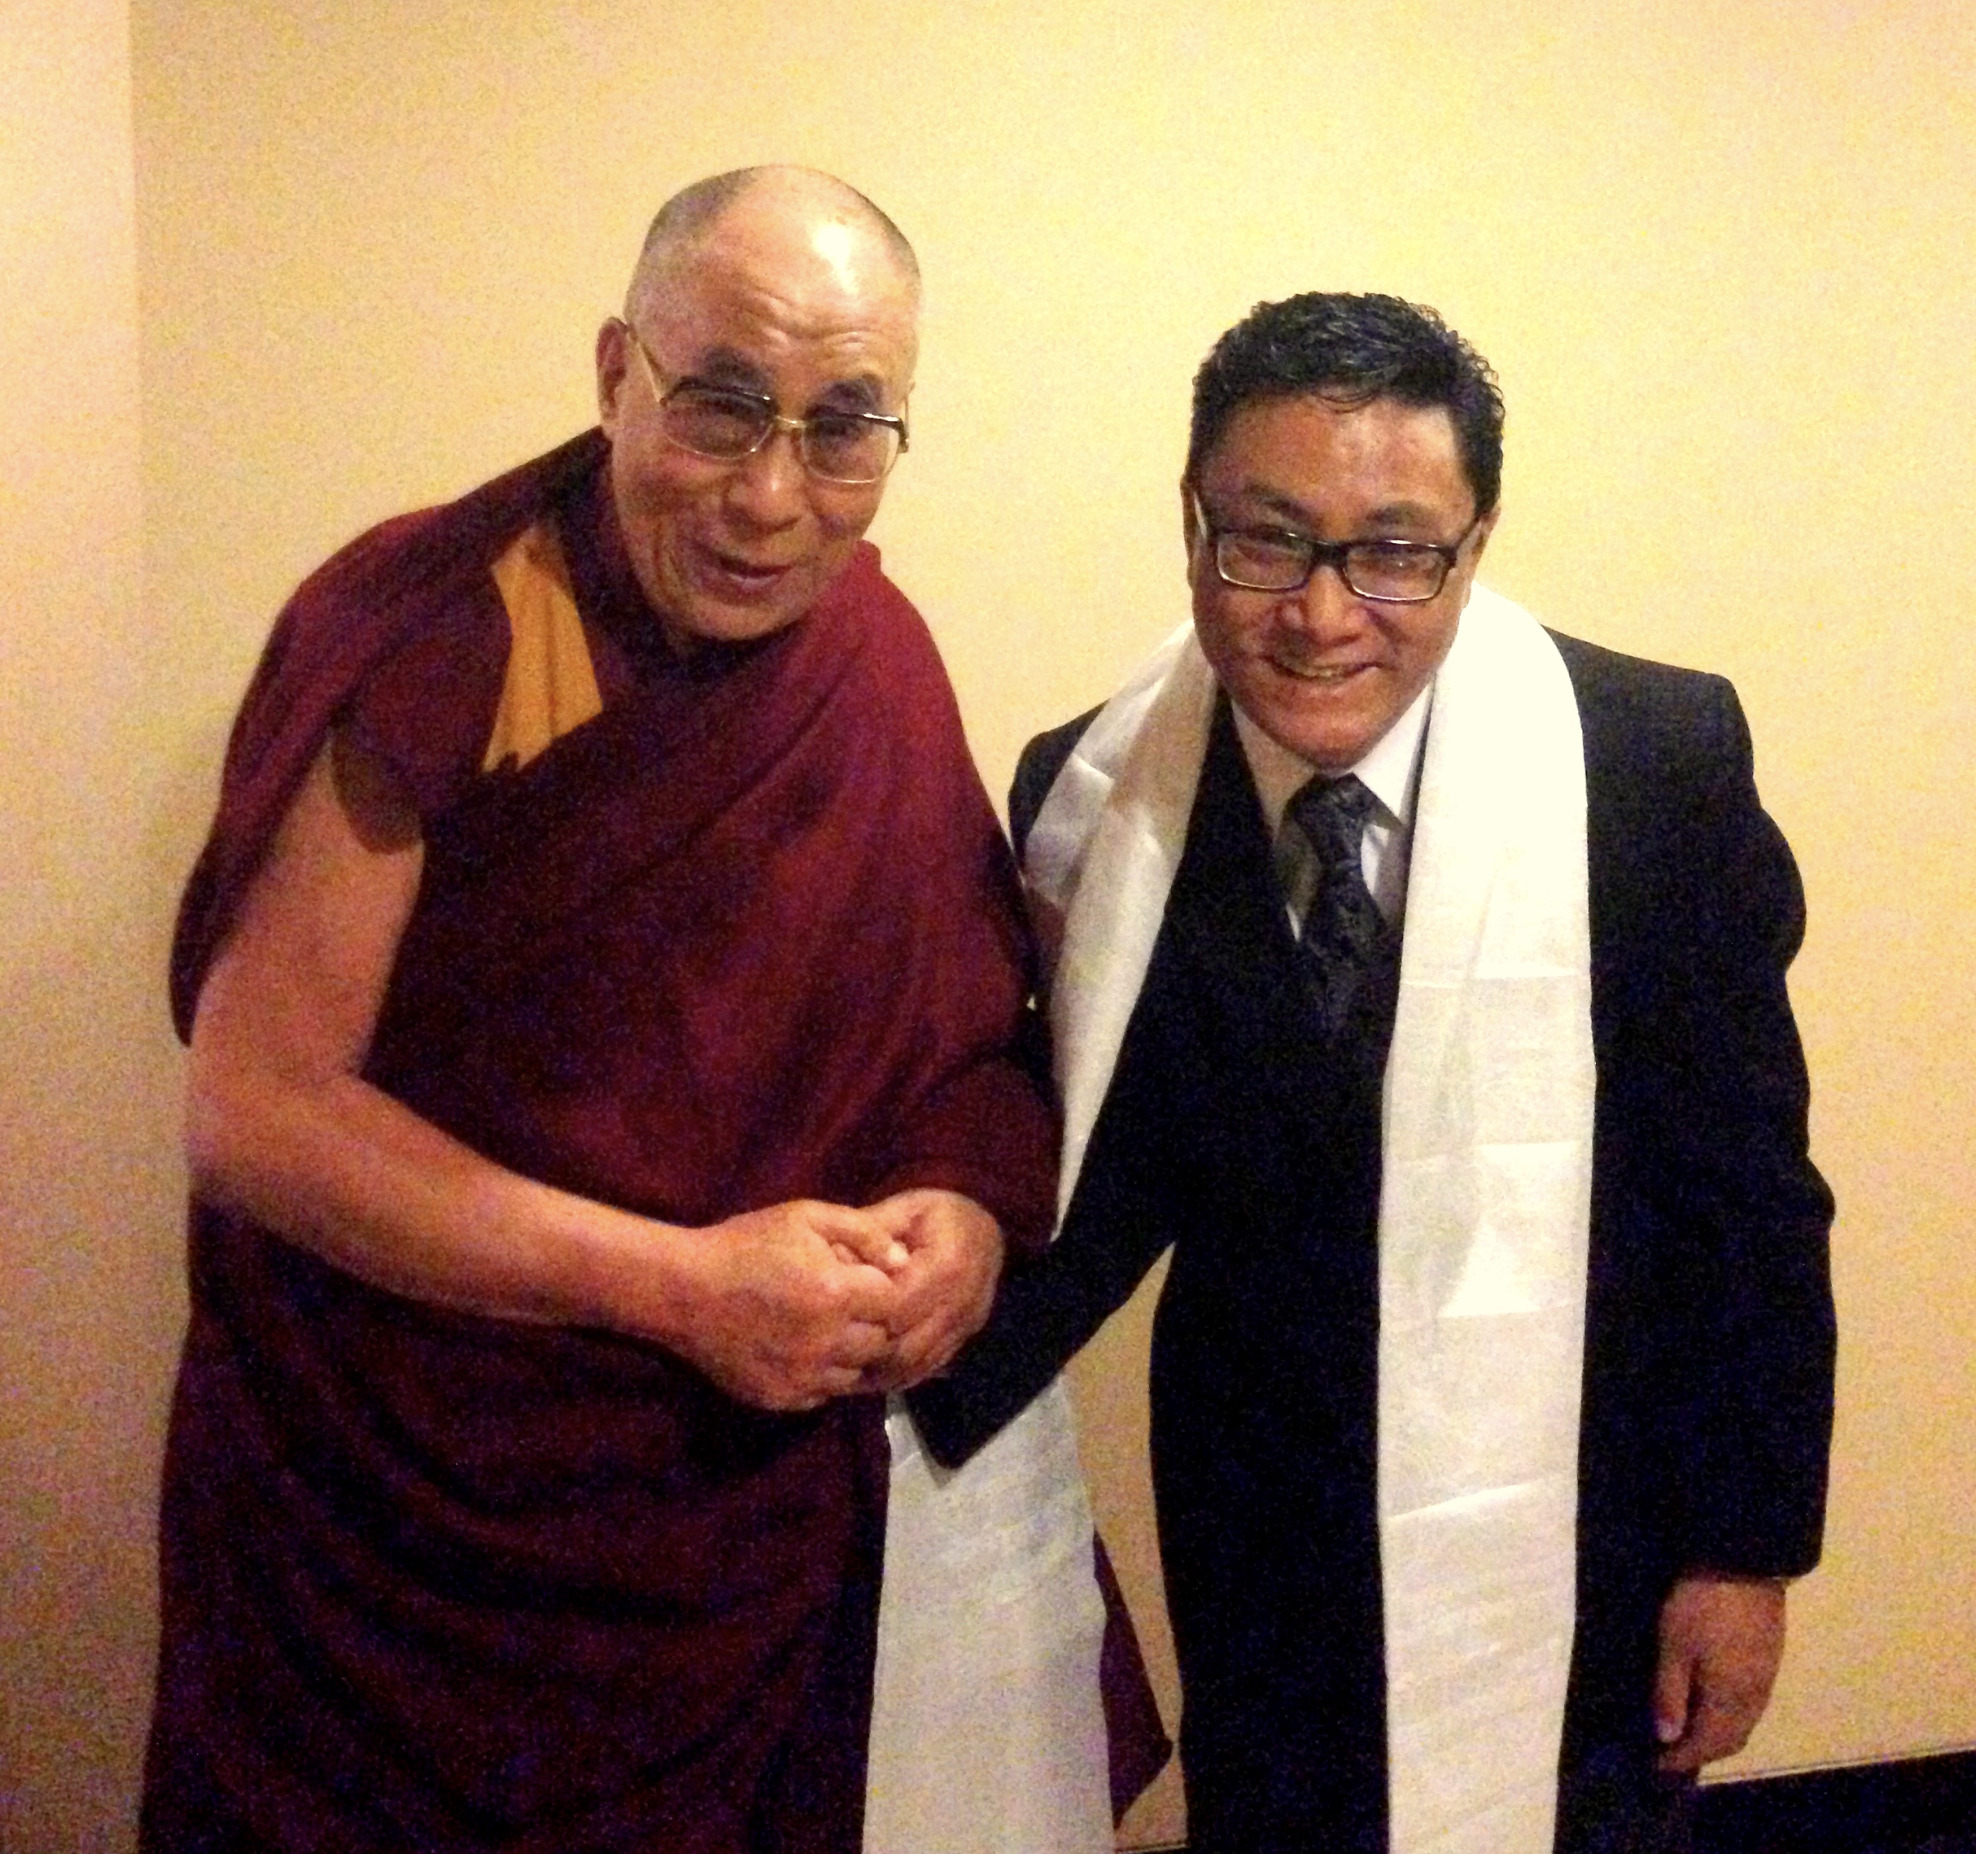 Mr. Palden Dhondup with His Holiness the Great 14th Dalai Lama of Tibet.